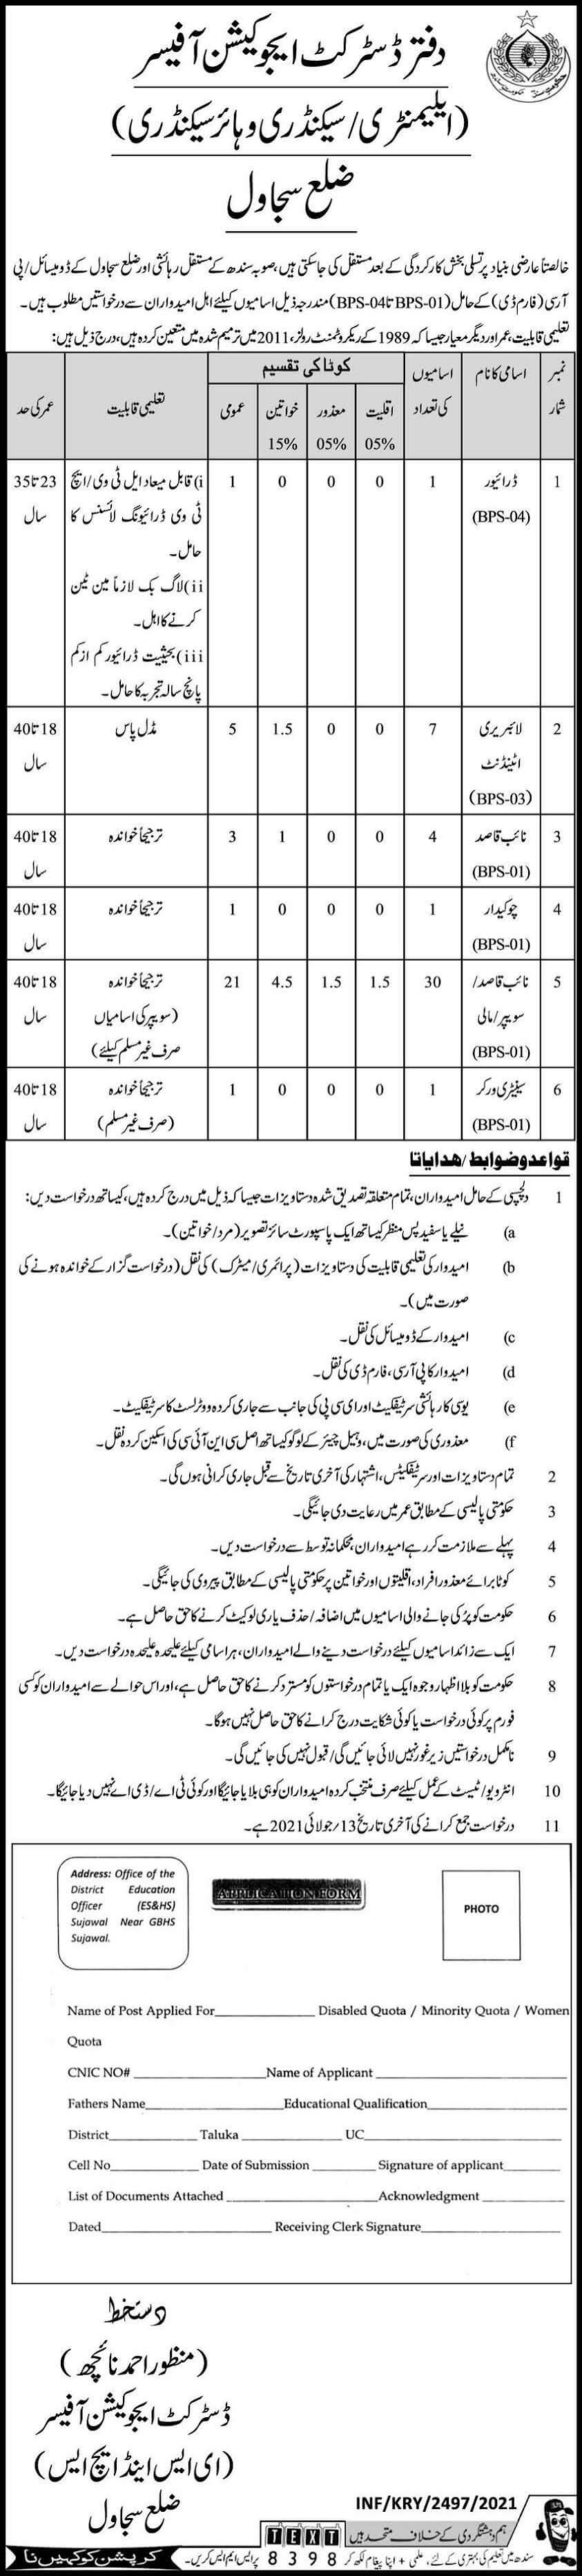 District Education Officer Sujawal Jobs 2021 in Pakistan